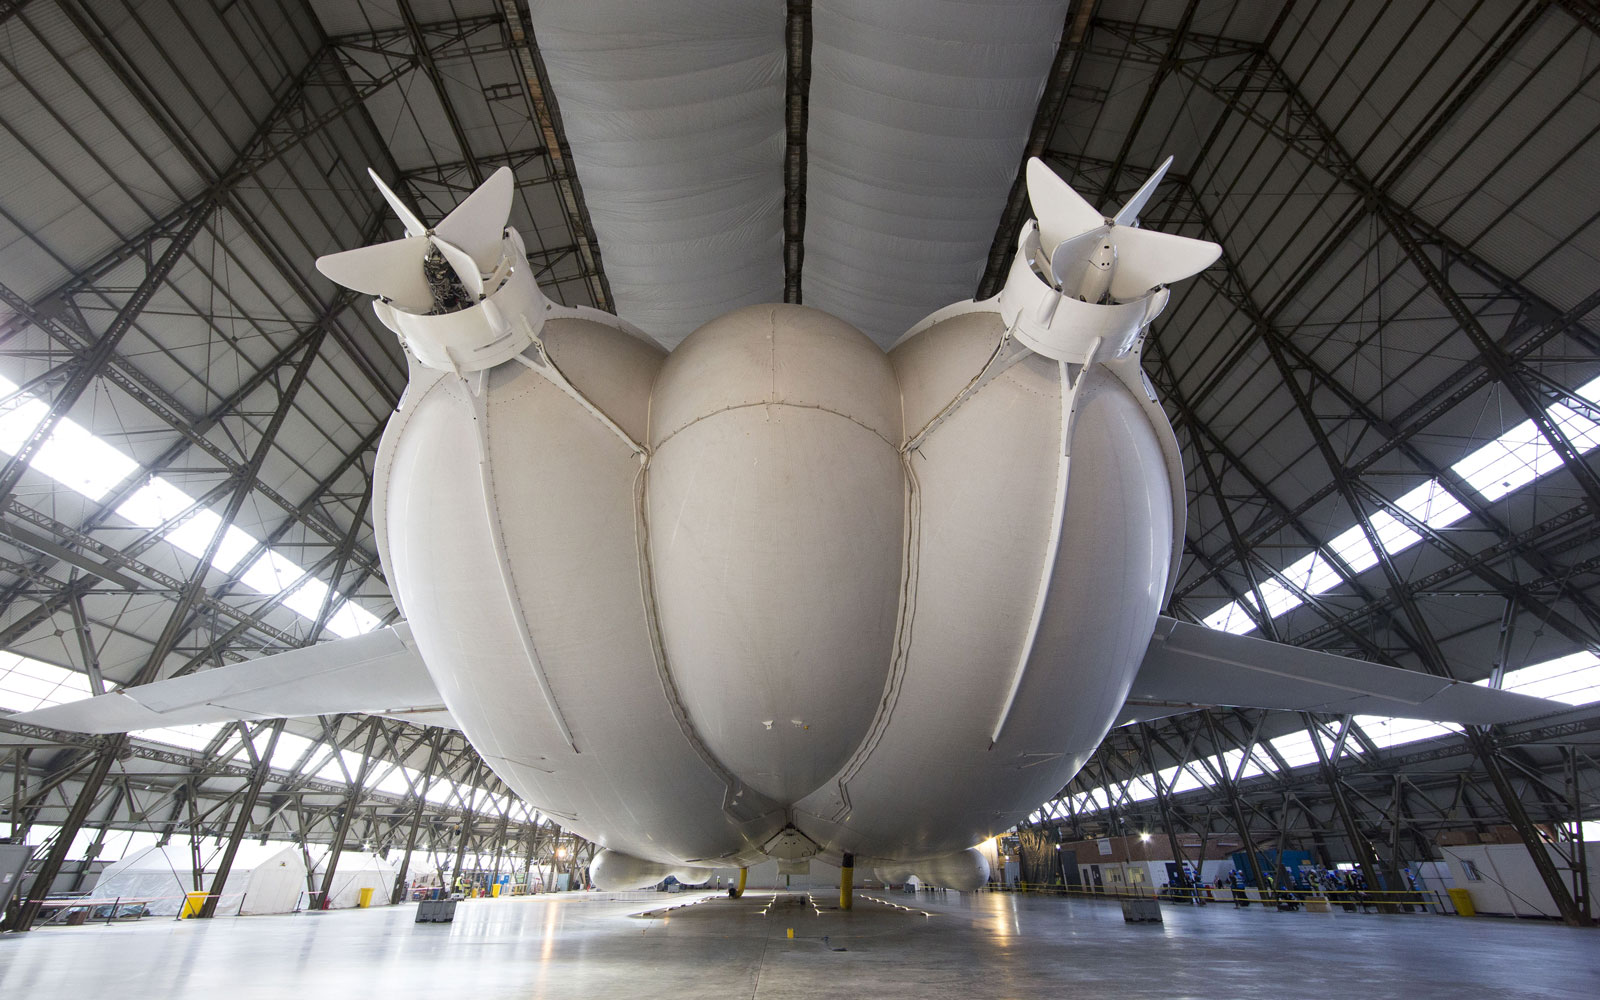 Airlander 10 is the world's largest aircraft